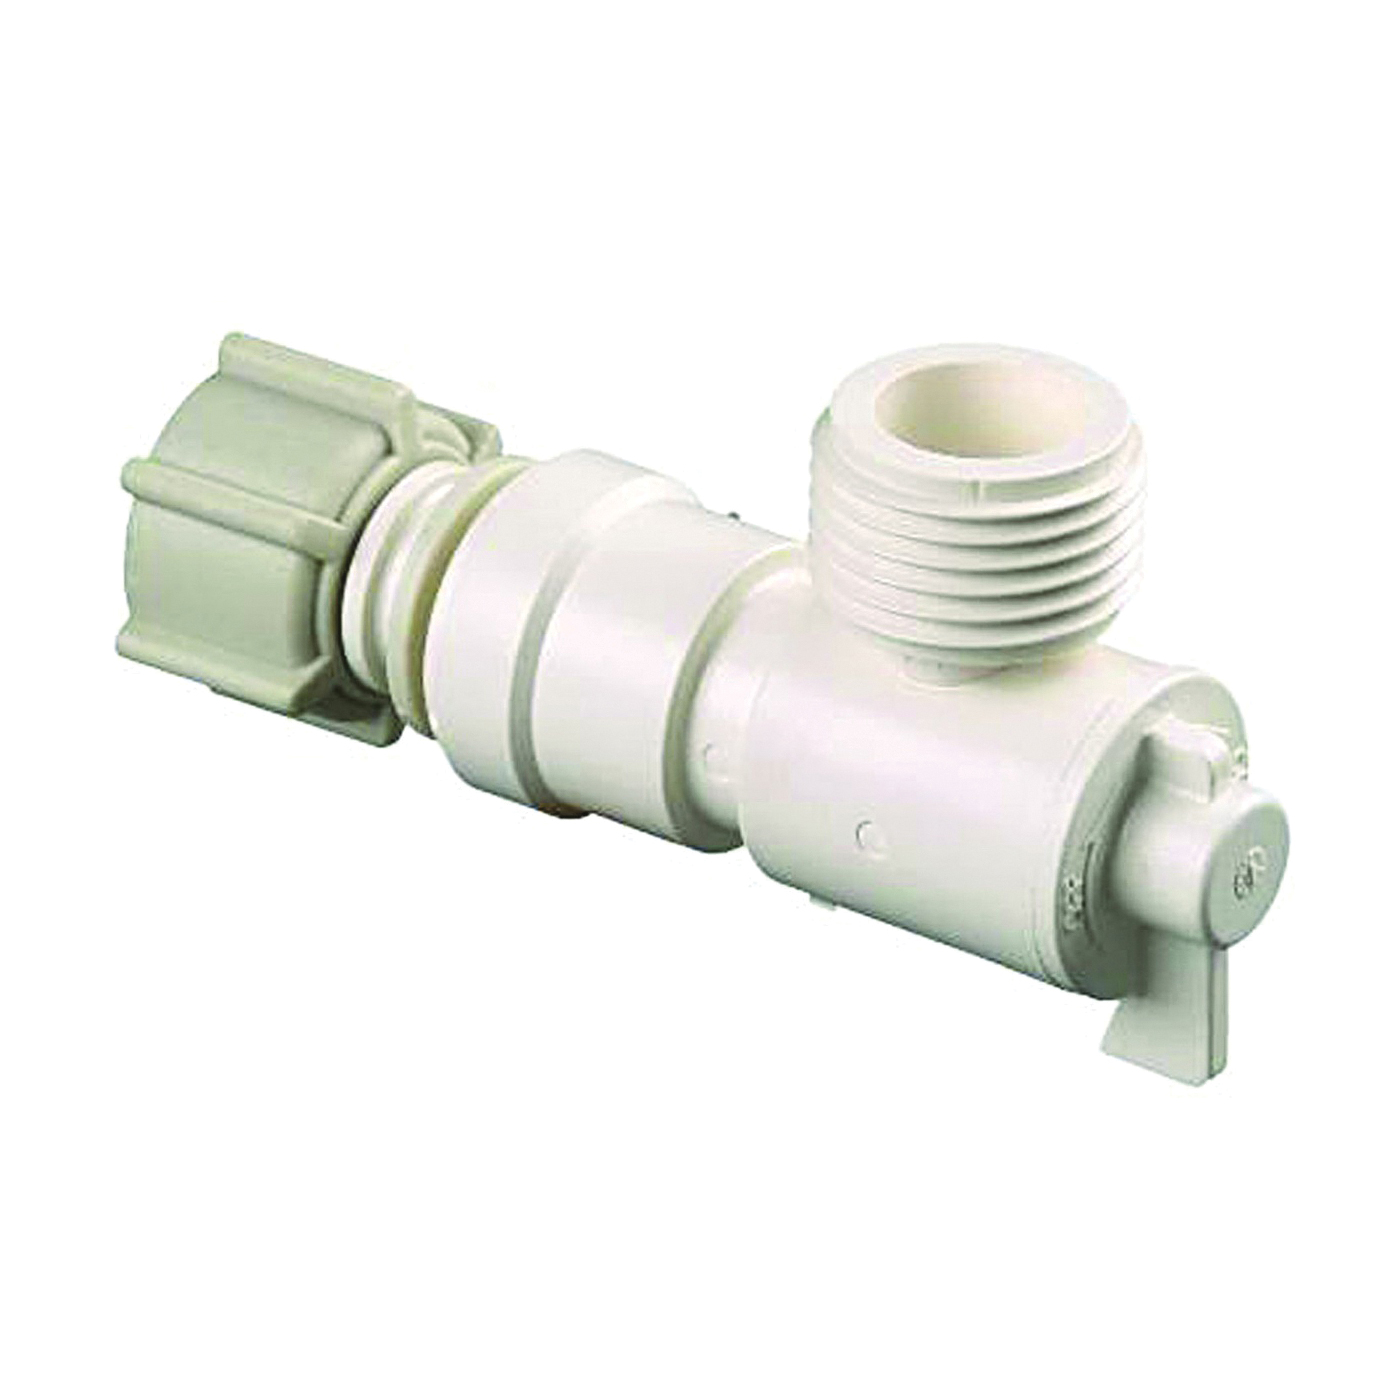 Picture of Watts P-682 Garden Hose Angle Valve FIP x MGH, FIP x MGH, 250 psi Pressure